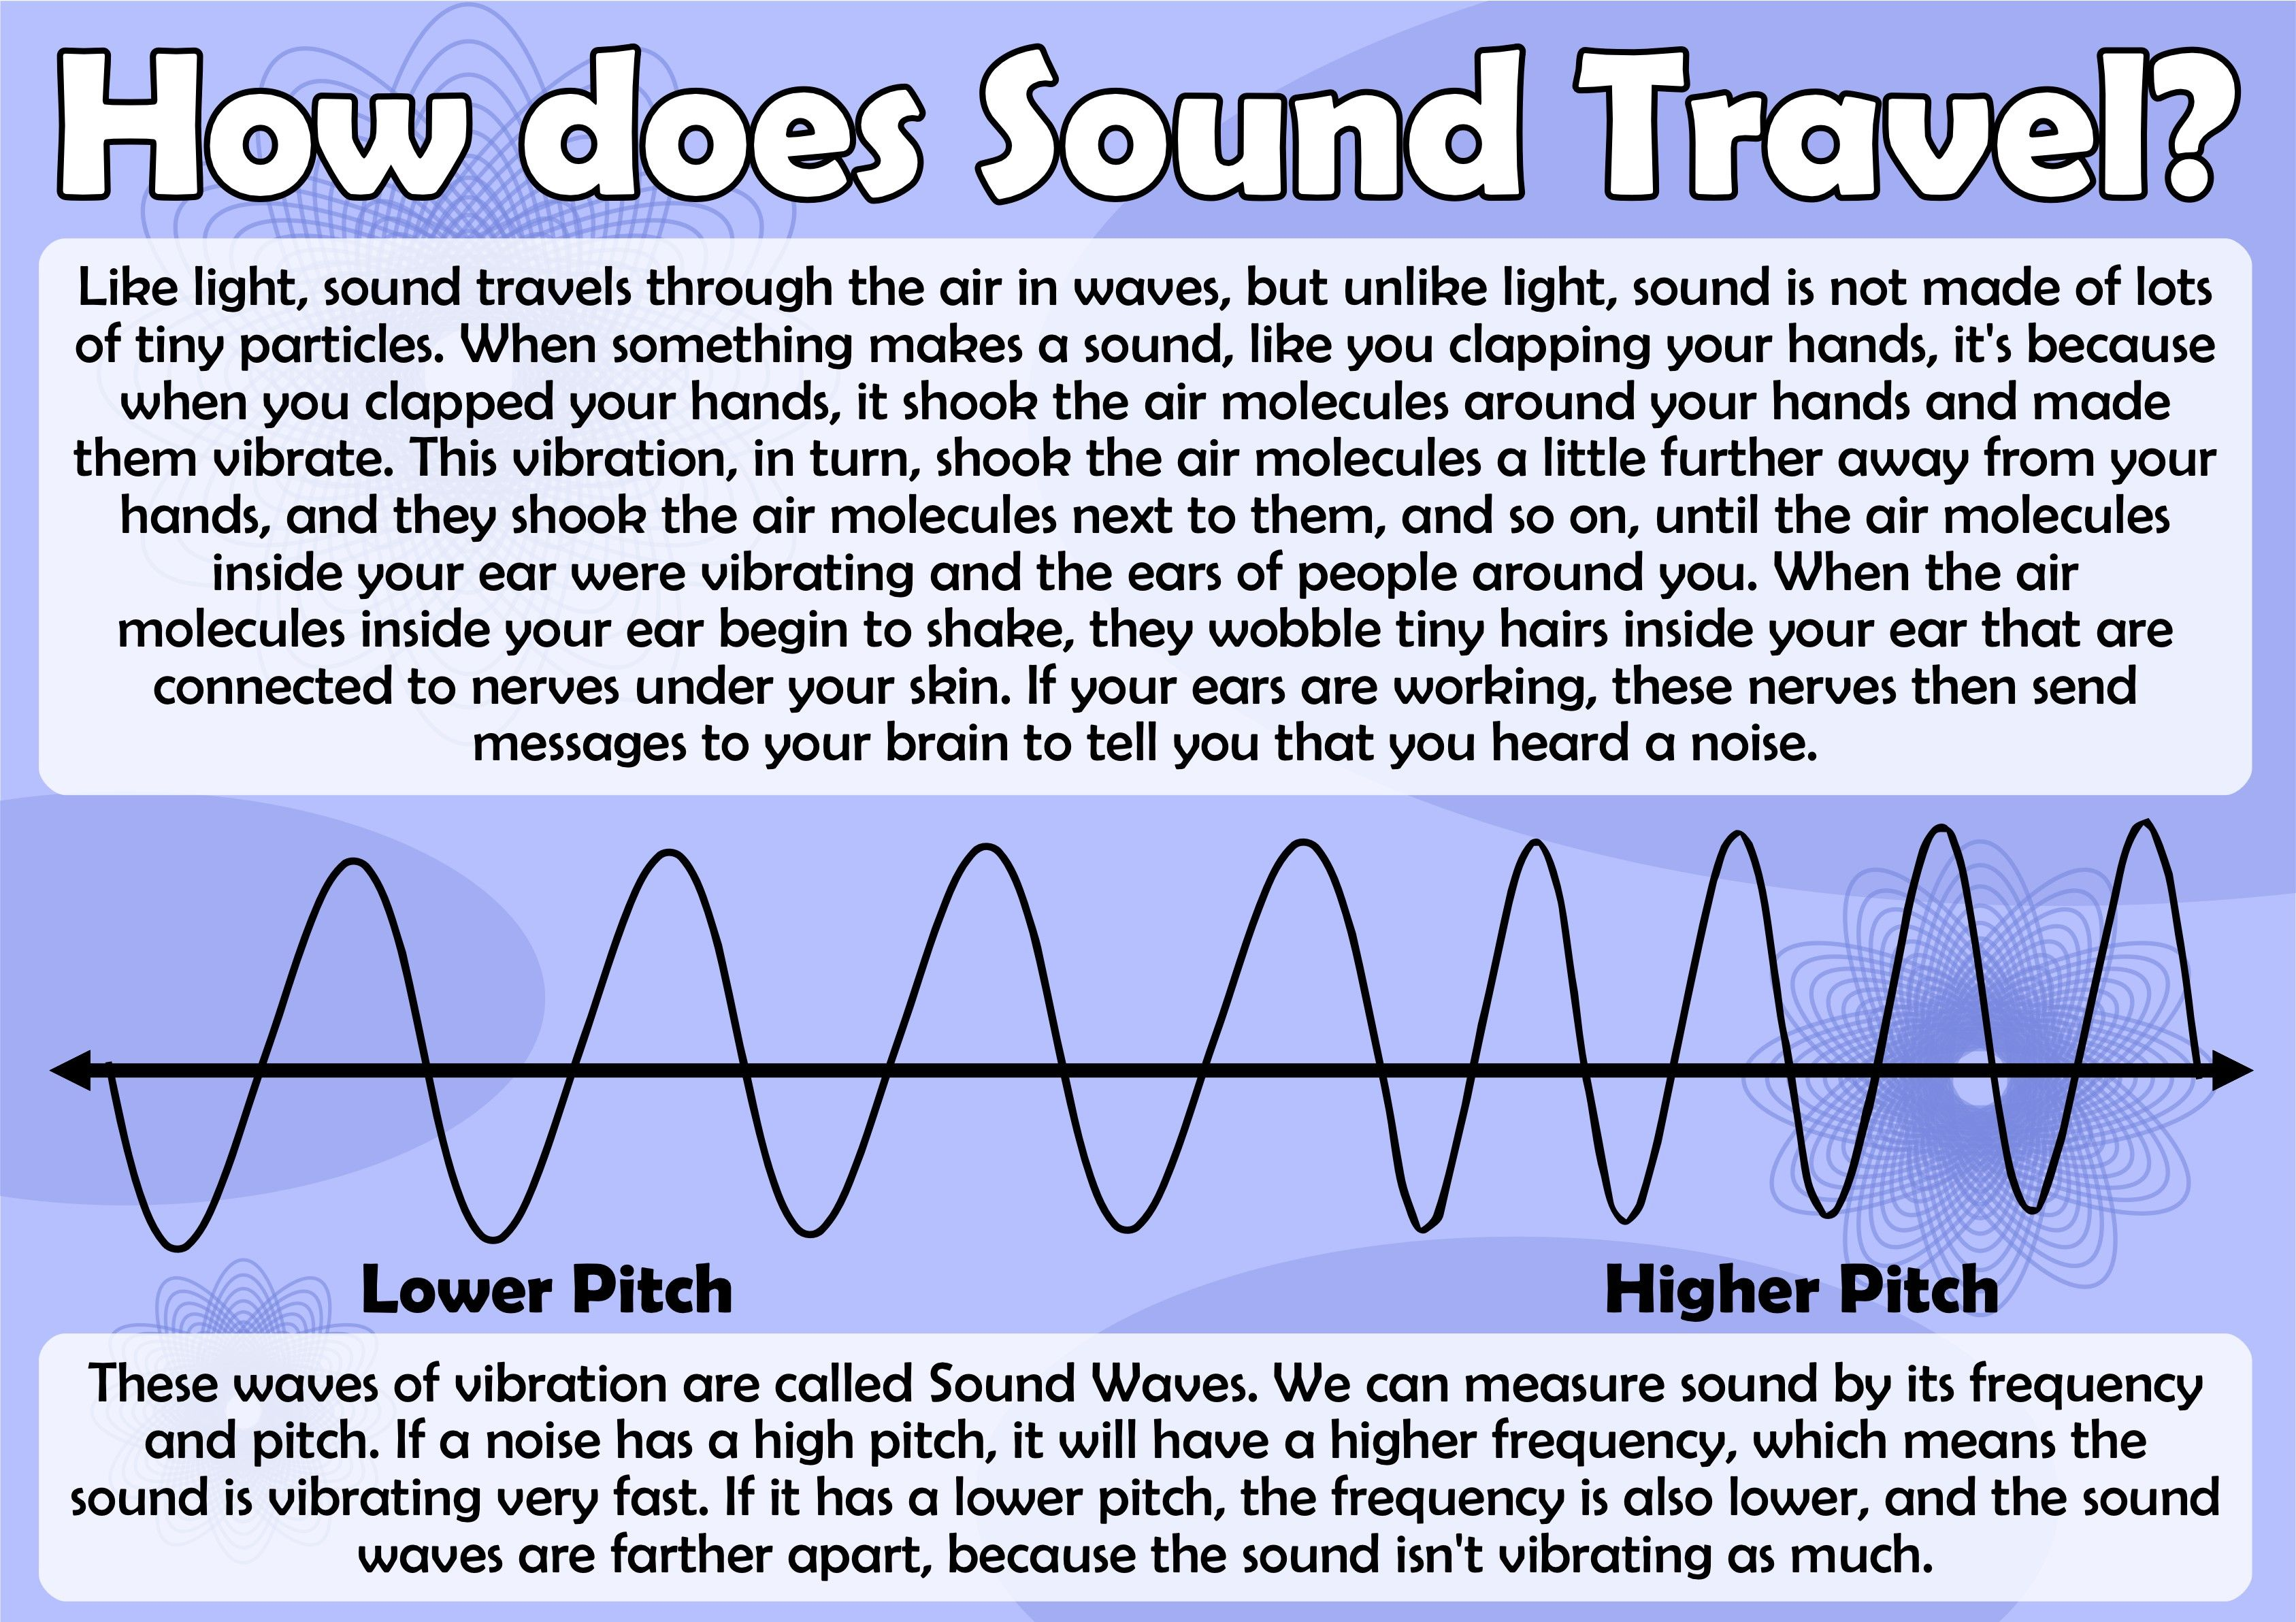 medium resolution of How Does Sound Travel? #Poster #Science #Sound   Music education quotes